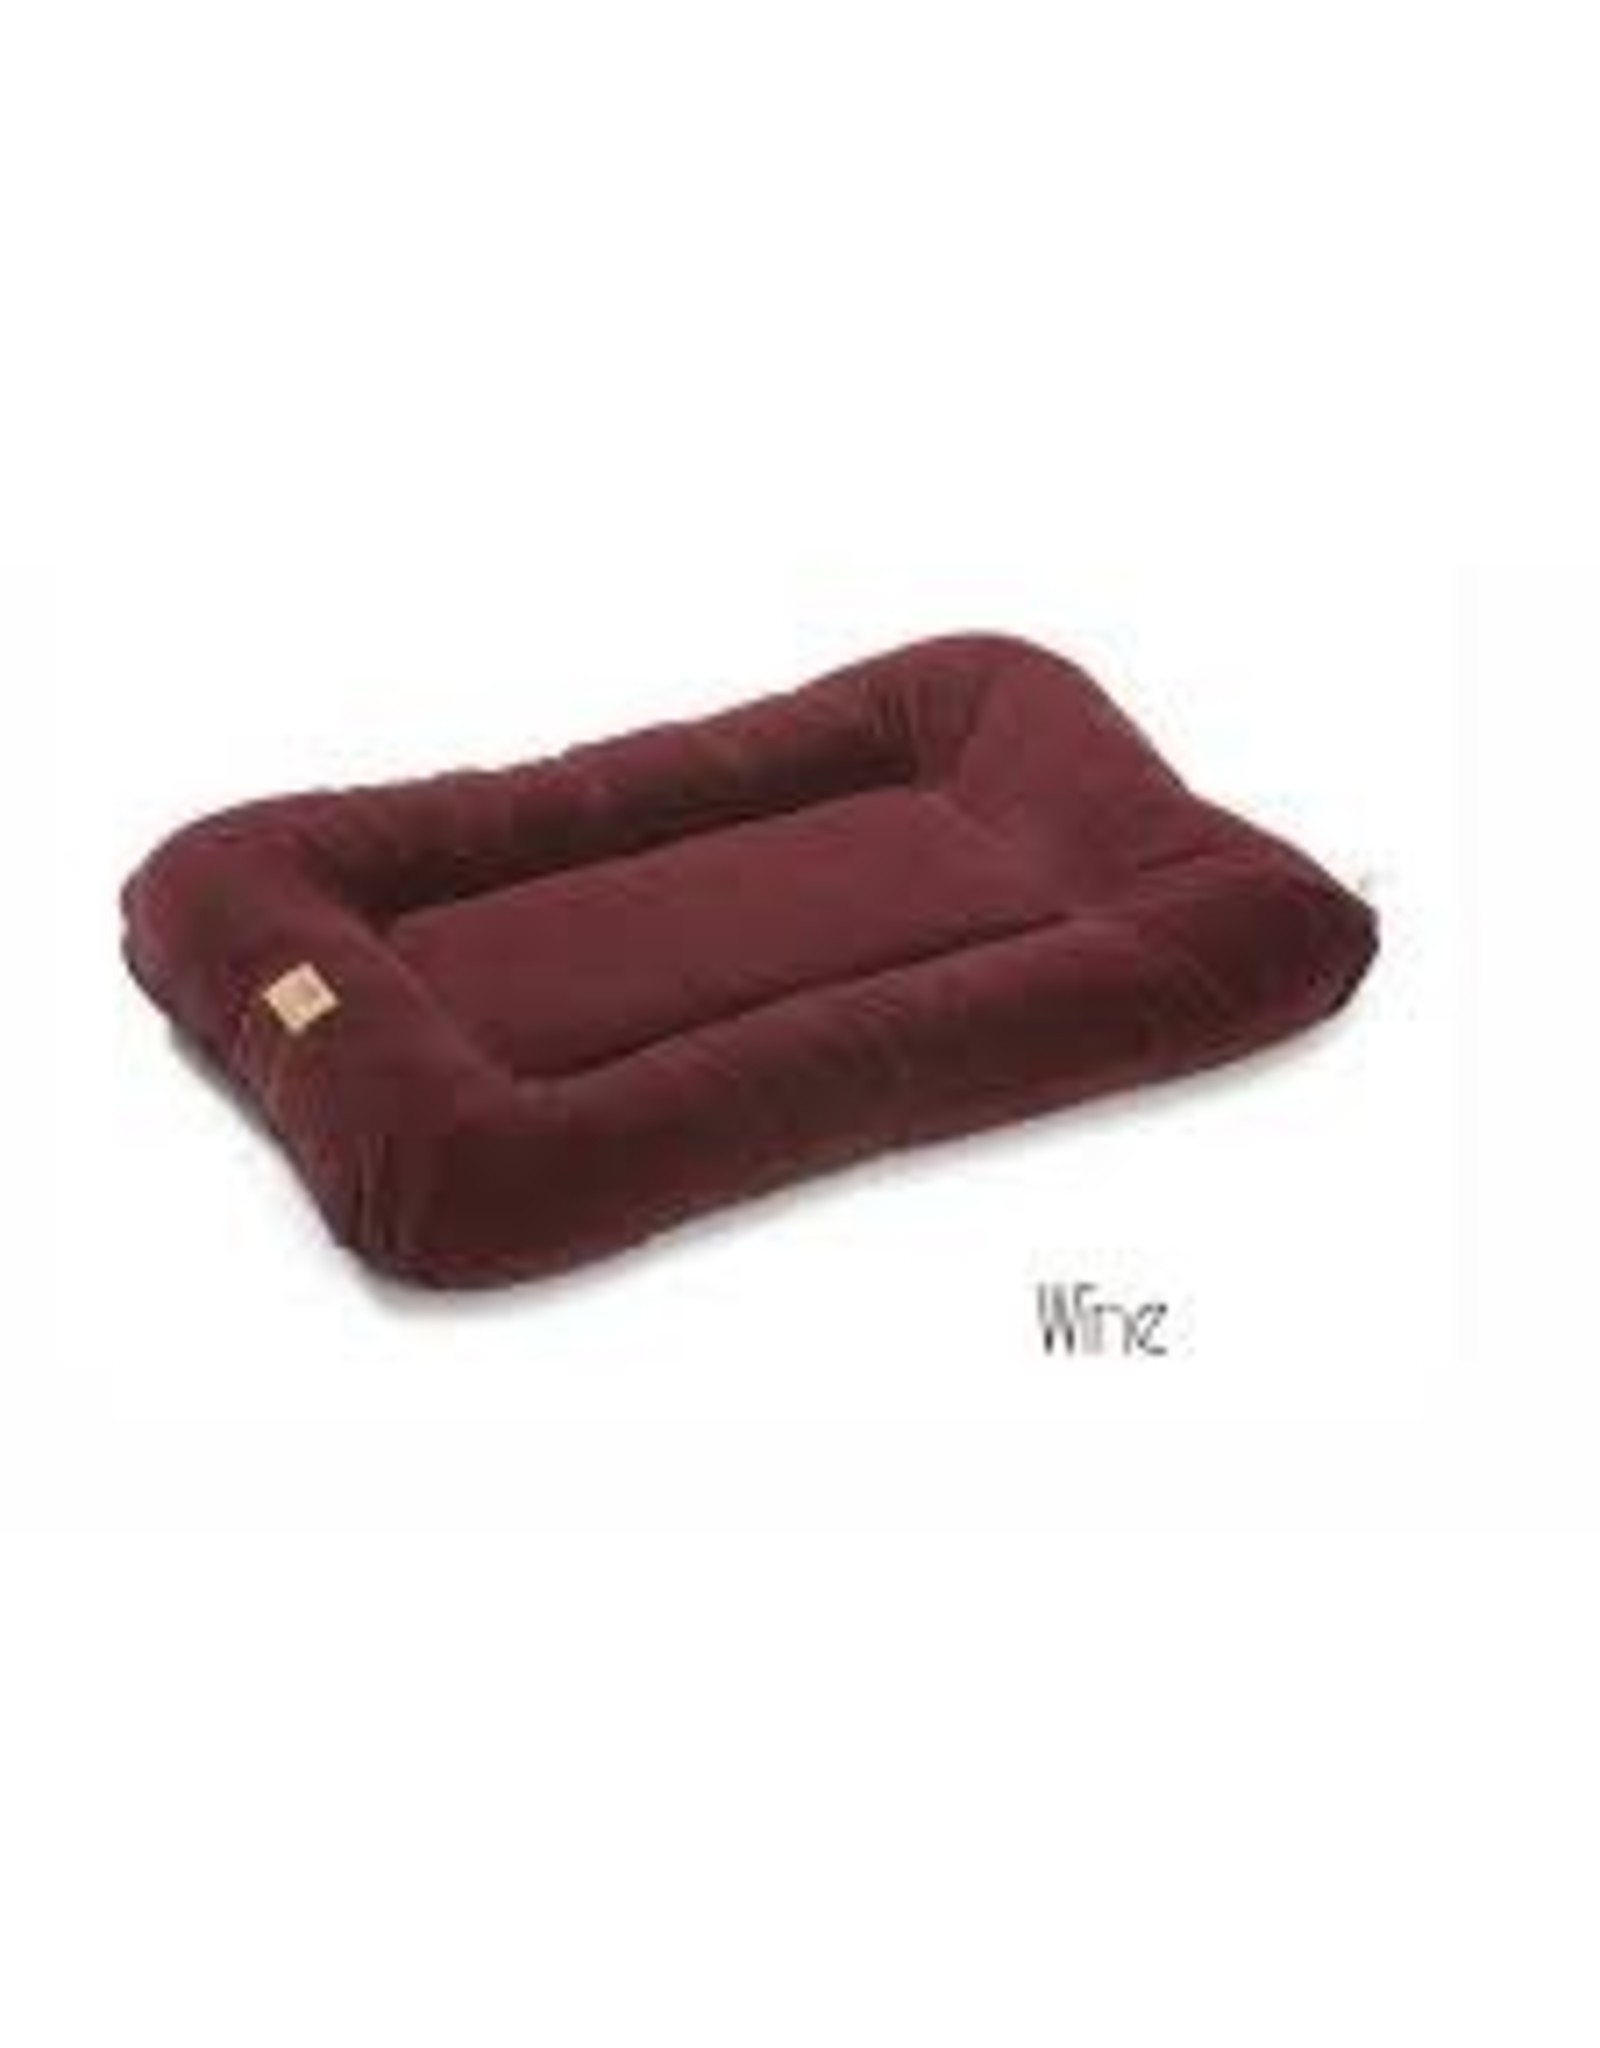 WEST PAW WEST PAW MONTANA NAP BED WINE L 35x22